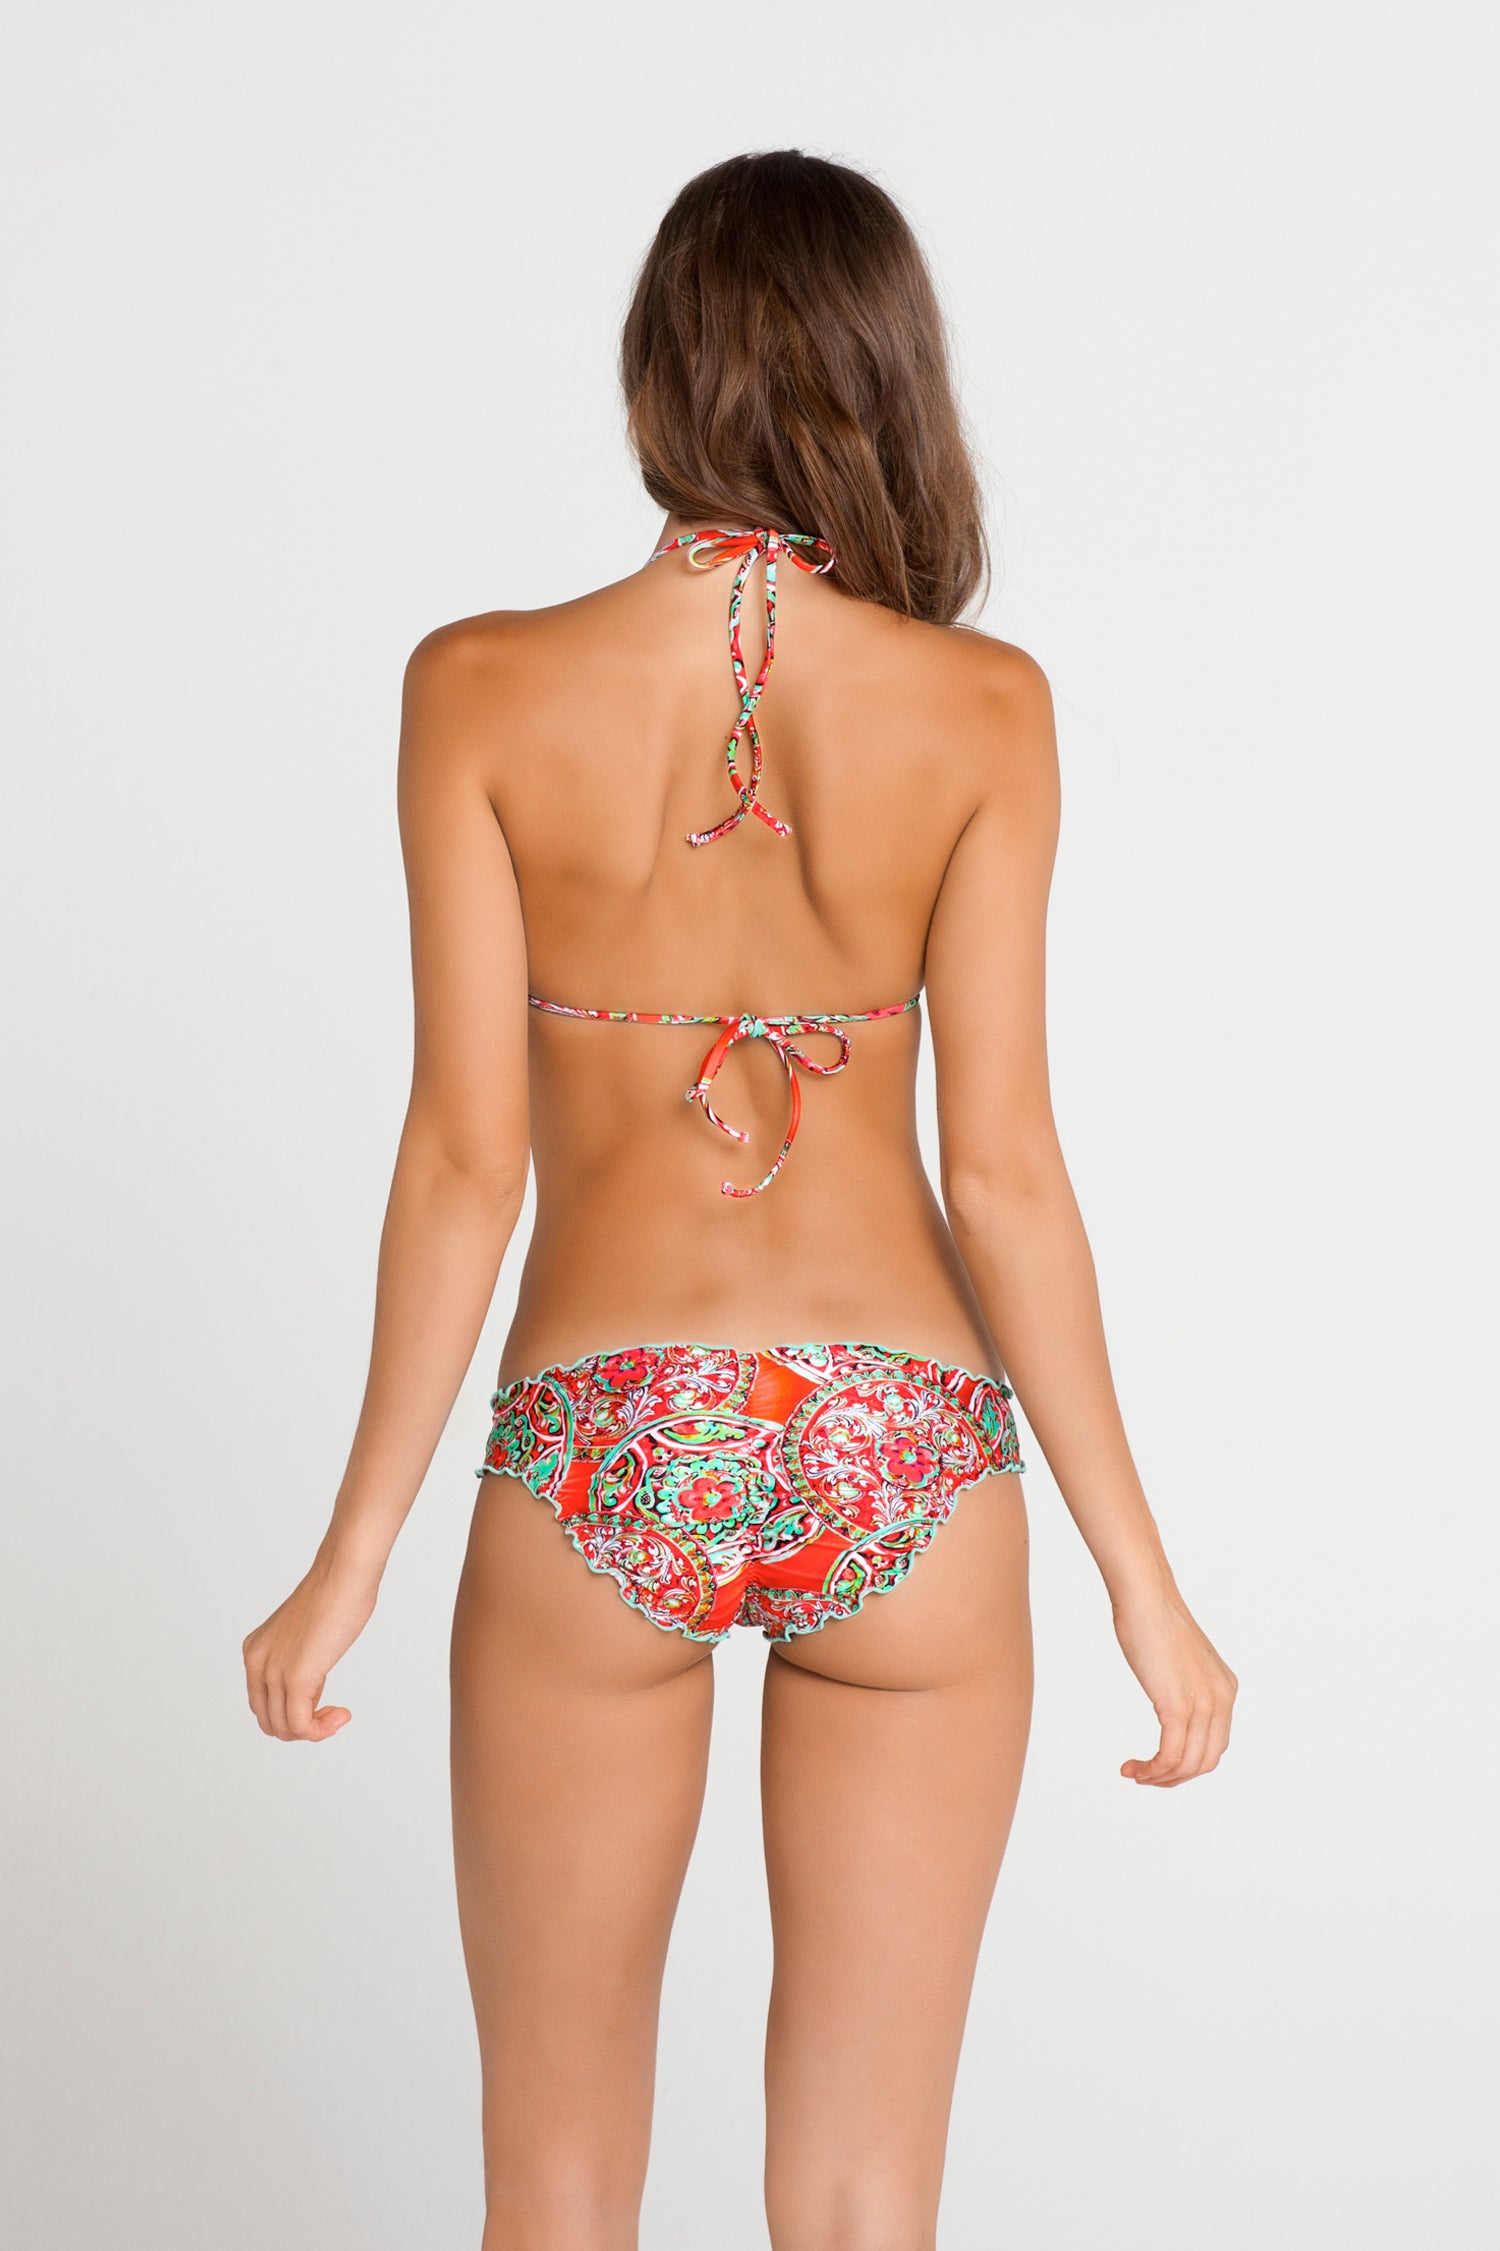 AZULEJOS DEL MAR - Wavey Triangle Top & Full Ruched Back Bottom • Multicolor